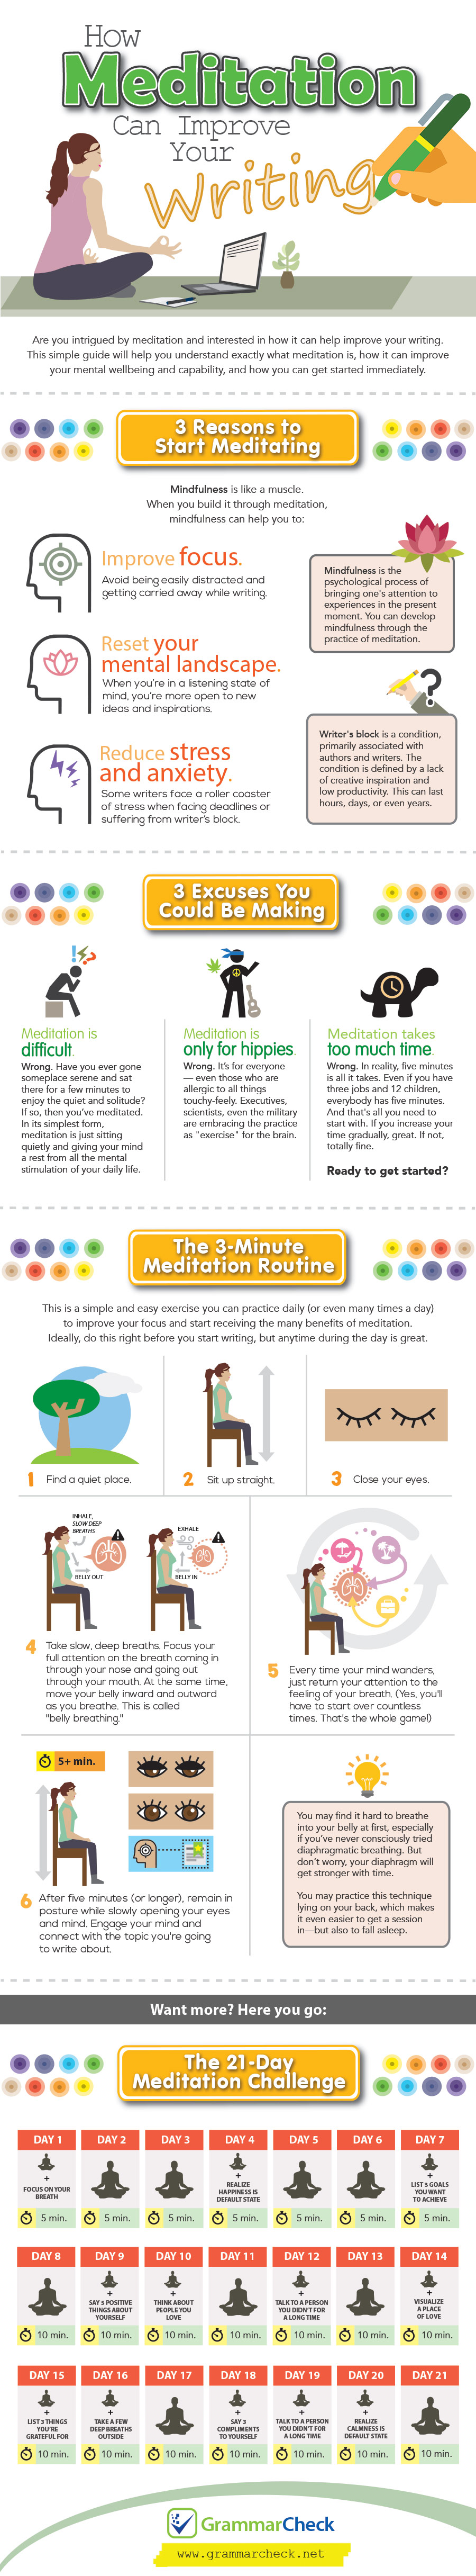 How Meditation Can Improve Your Writing (Infographic)